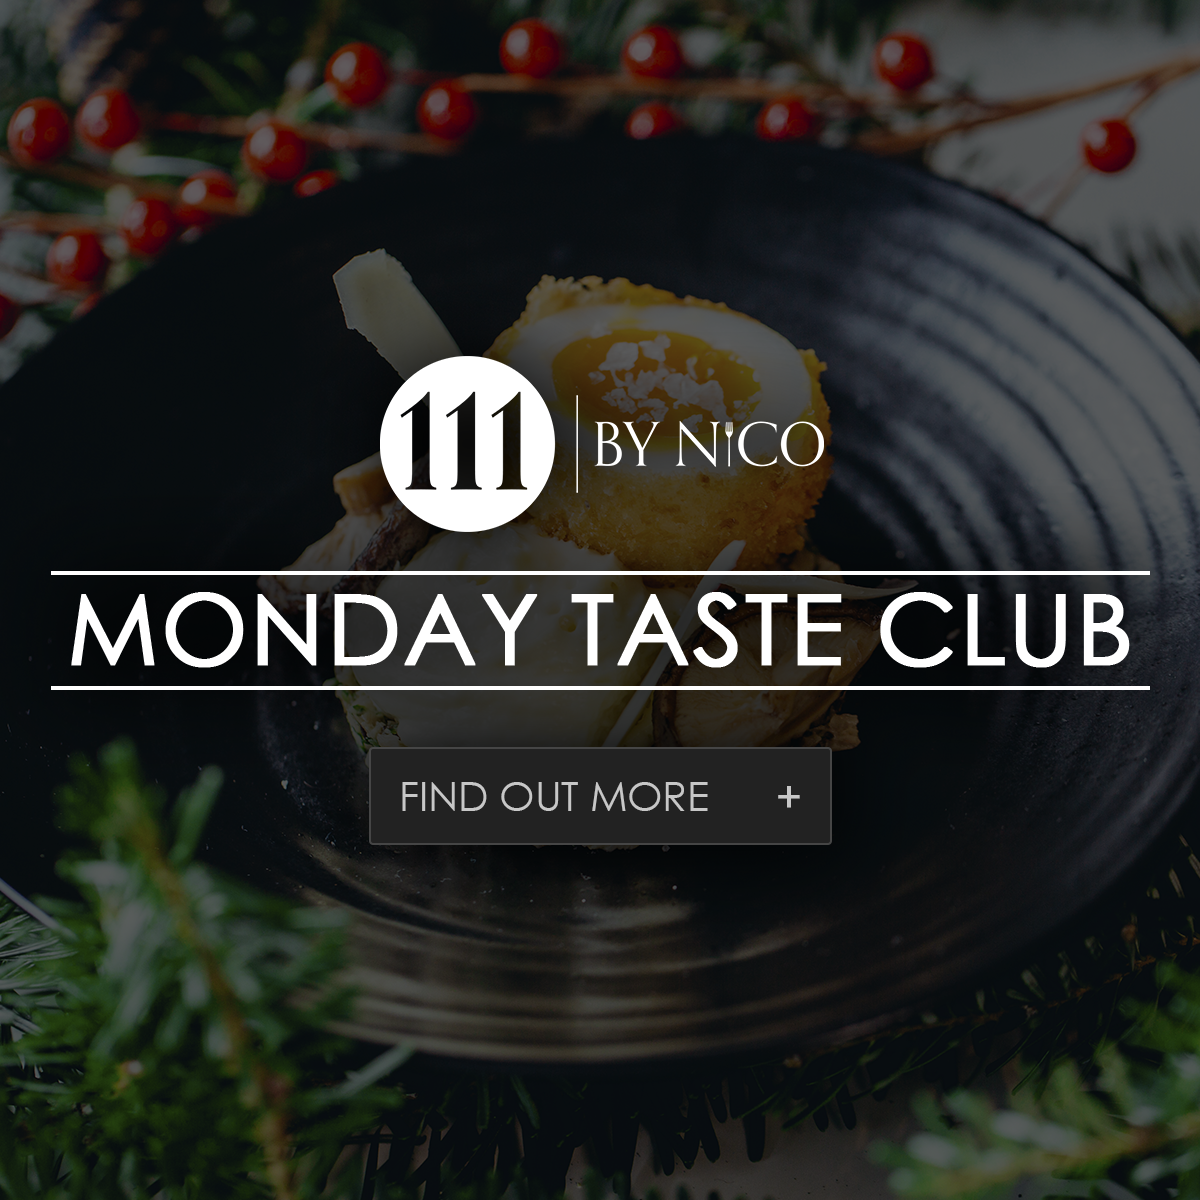 monday taste club at 111 by nicos